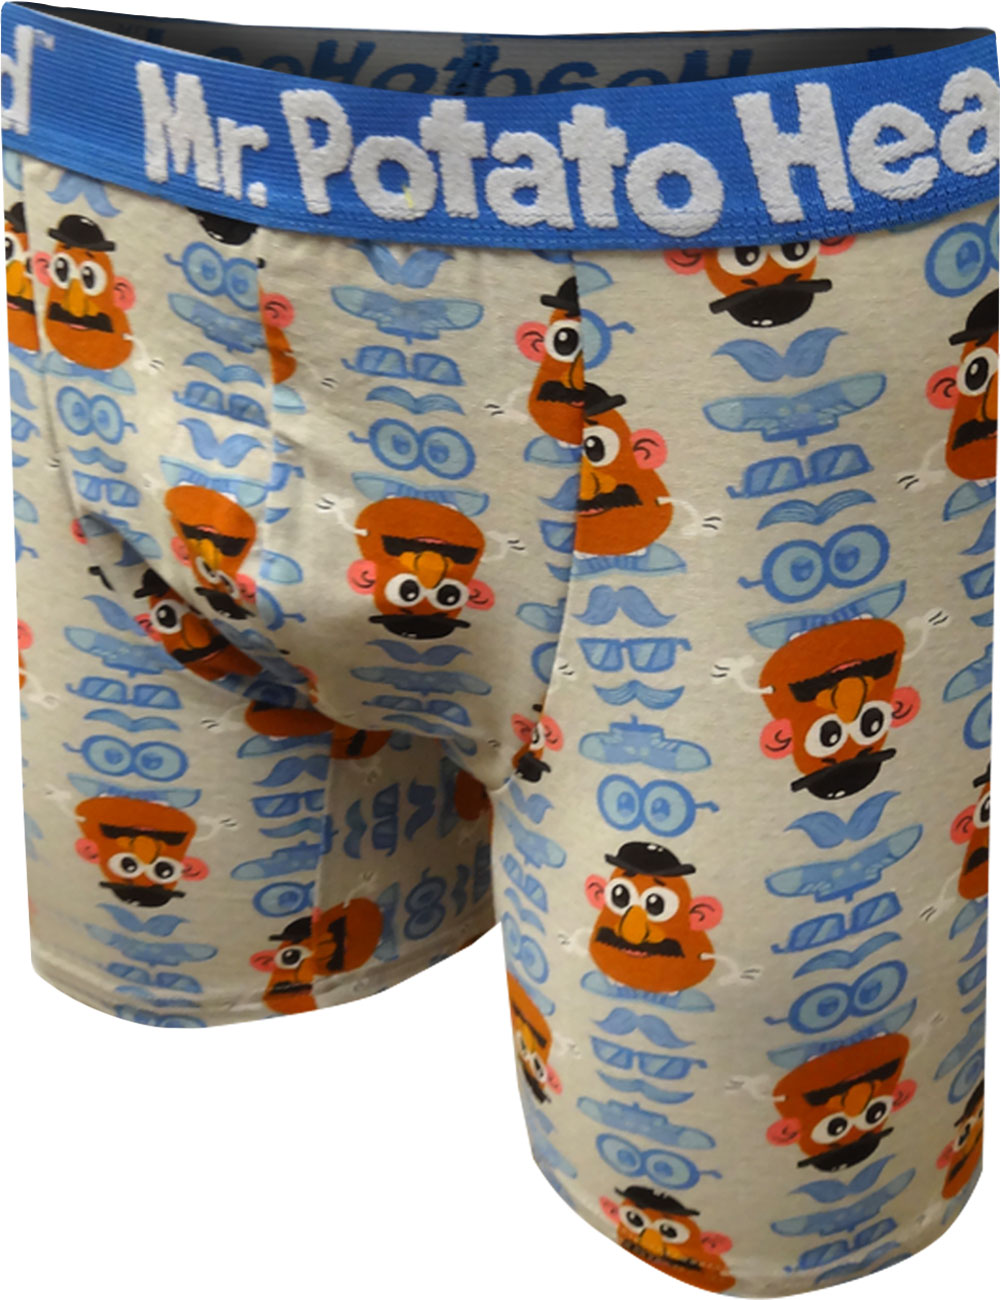 Image of Toy Story Mr. Potato Head Boxer Briefs for men